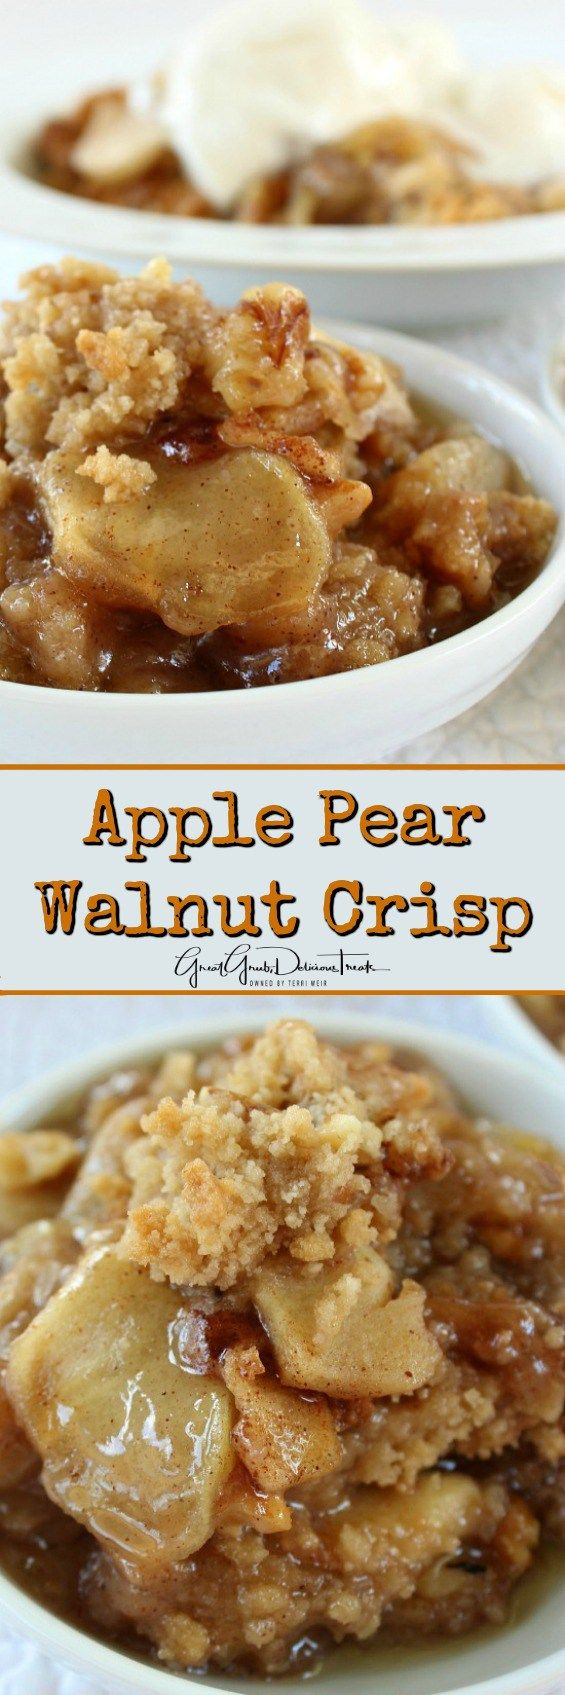 Apple Pear Walnut Crisp - This Apple Pear Walnut Crisp is so easy to make and will definitely satisfy your dessert craving! You are gonna love this one!